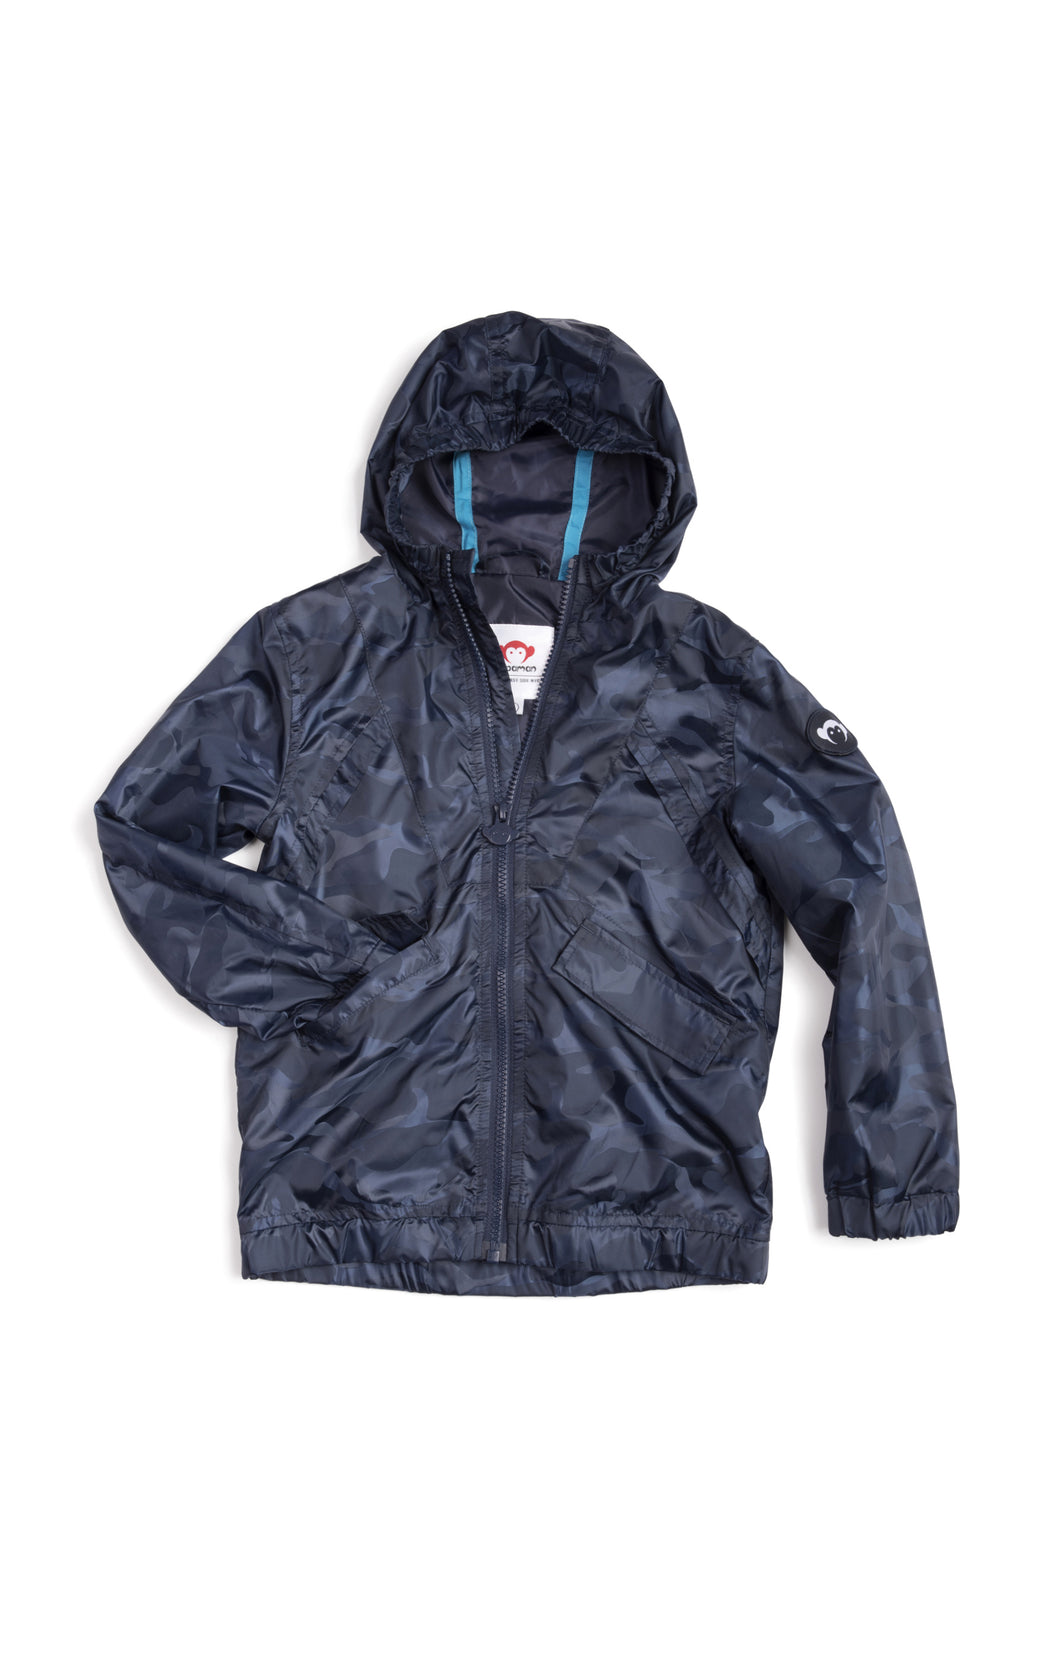 Expedition Windbreaker In Navy by Appaman